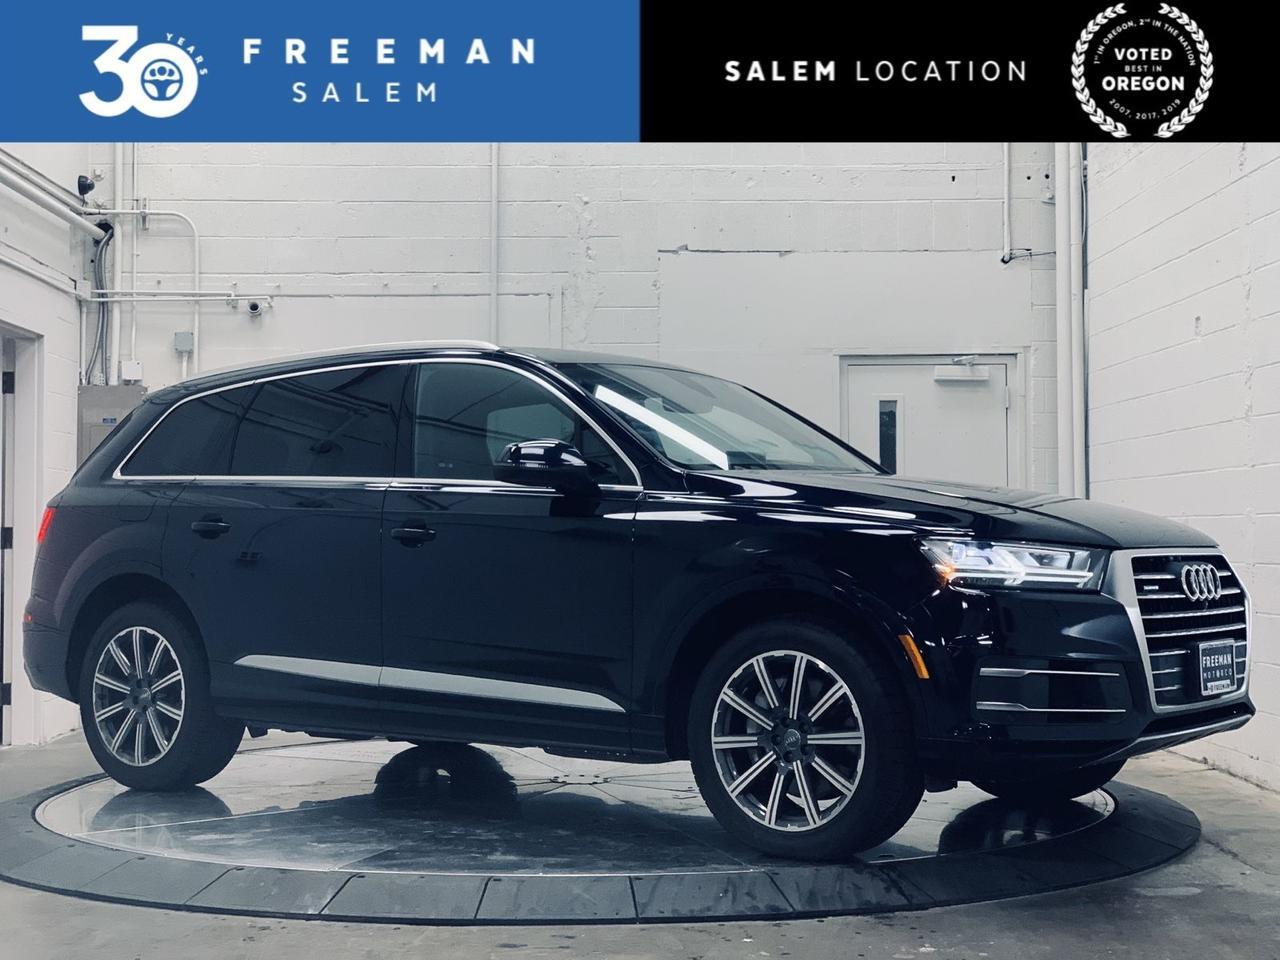 2017 Audi Q7 Premium Plus Vision Package Heated/Cooled Seats Salem OR